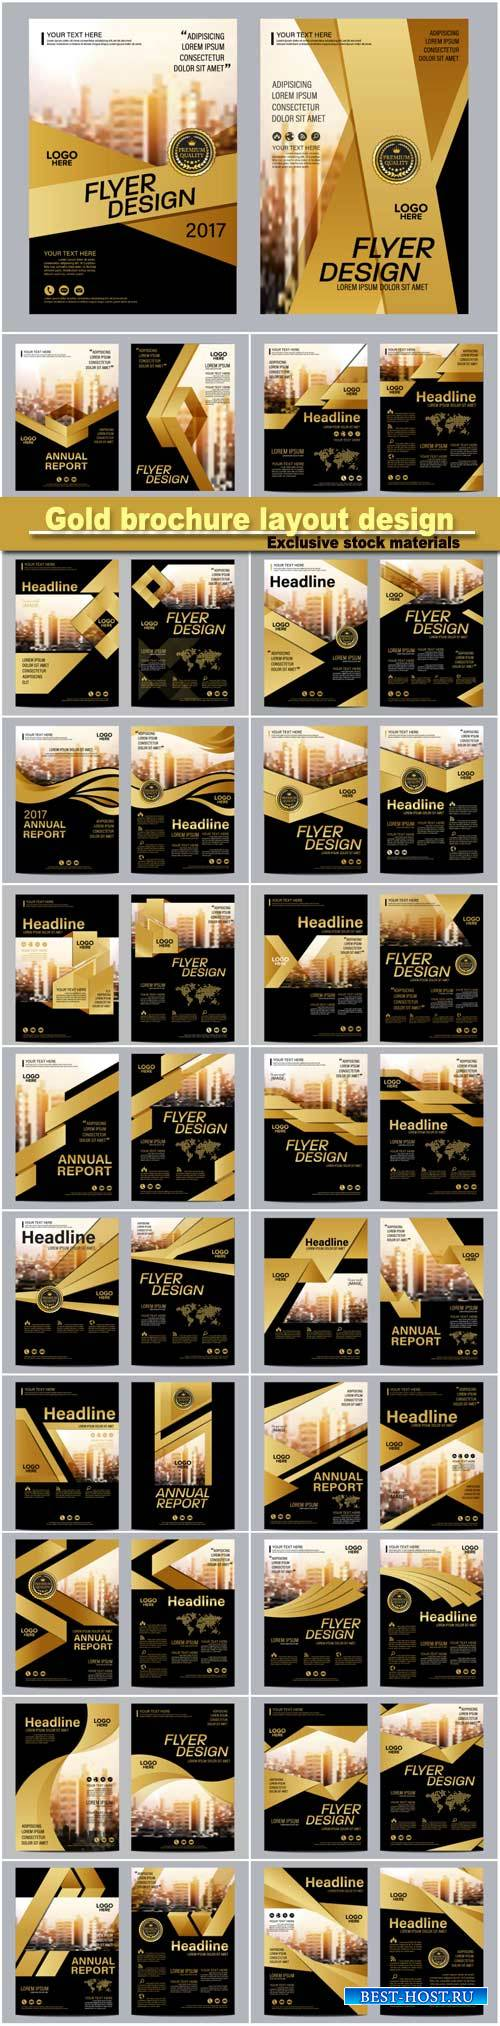 Gold brochure layout design template, annual report flyer leaflet cover pre ...